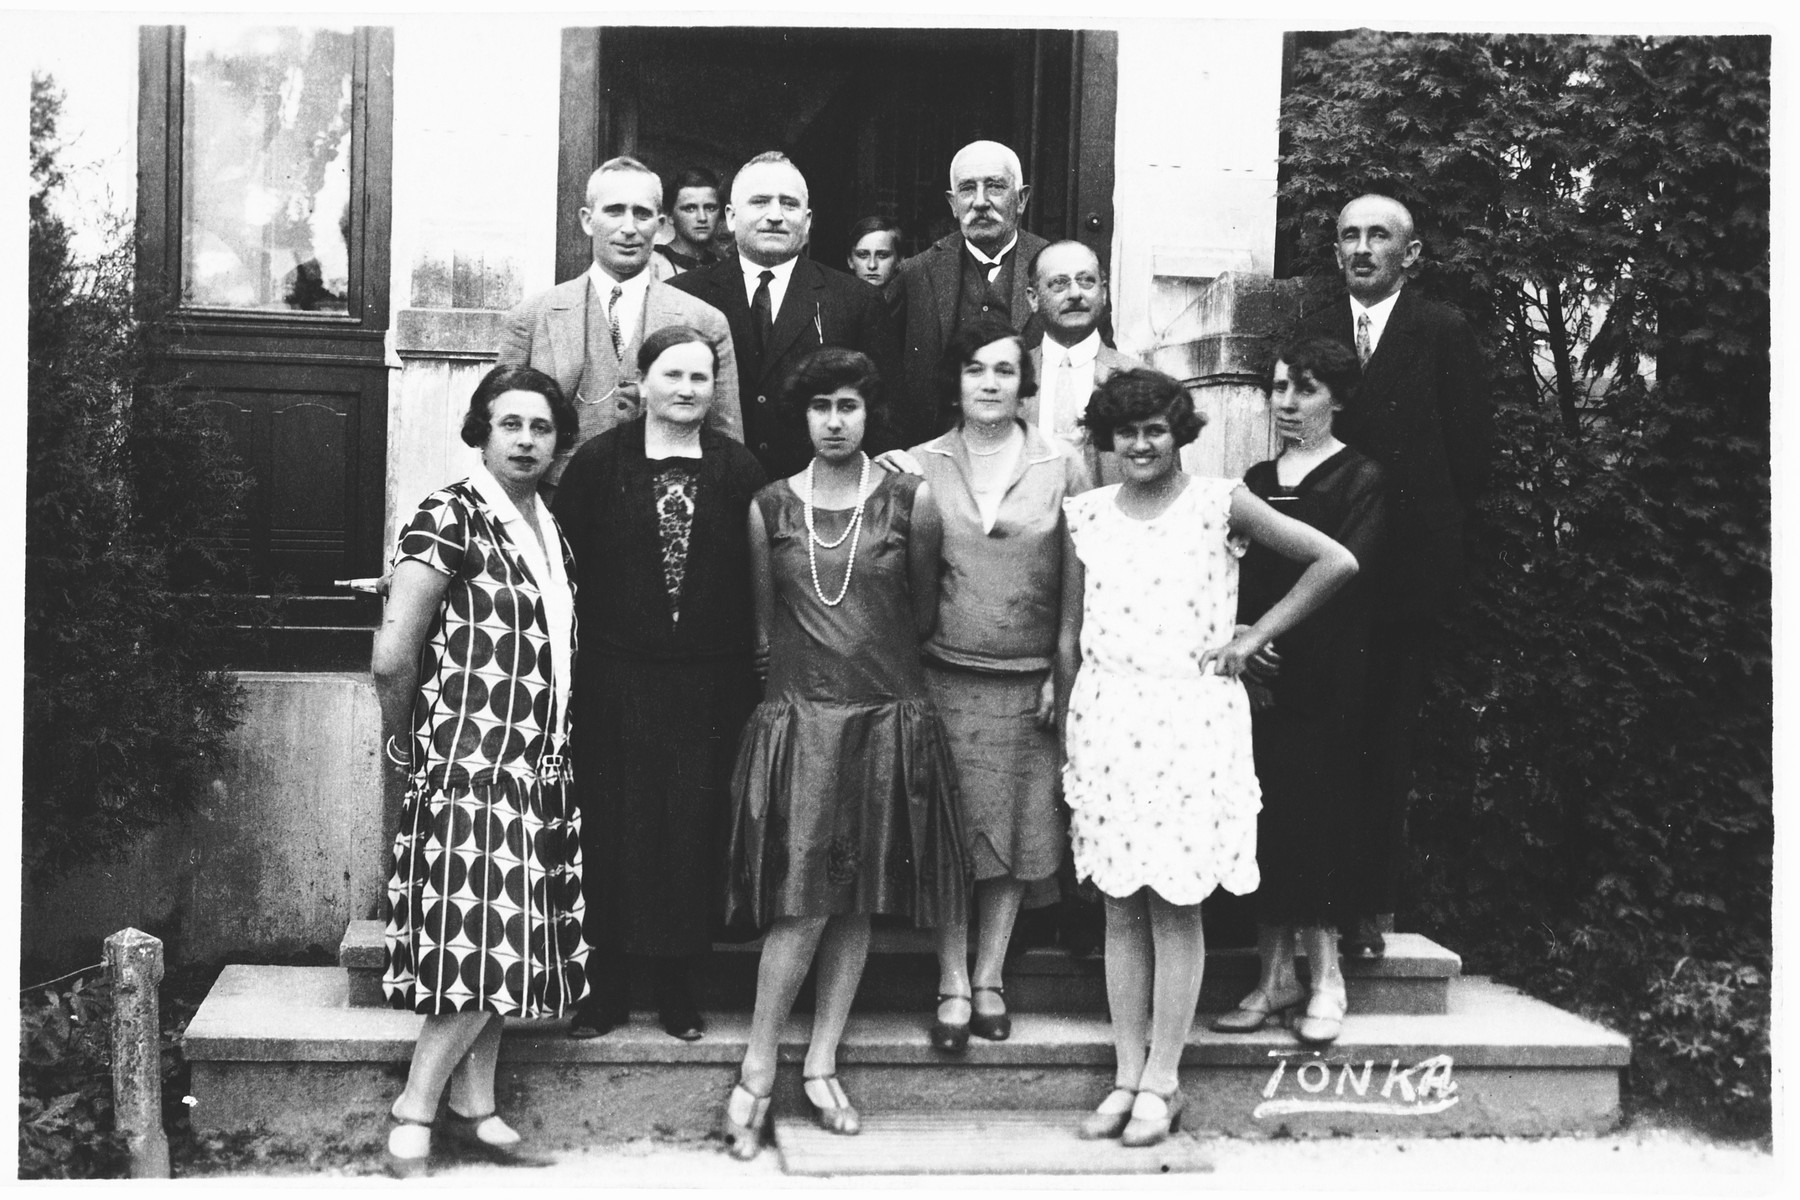 Members of the Spitzer family pose on the steps of a house in Osijek, Croatia.